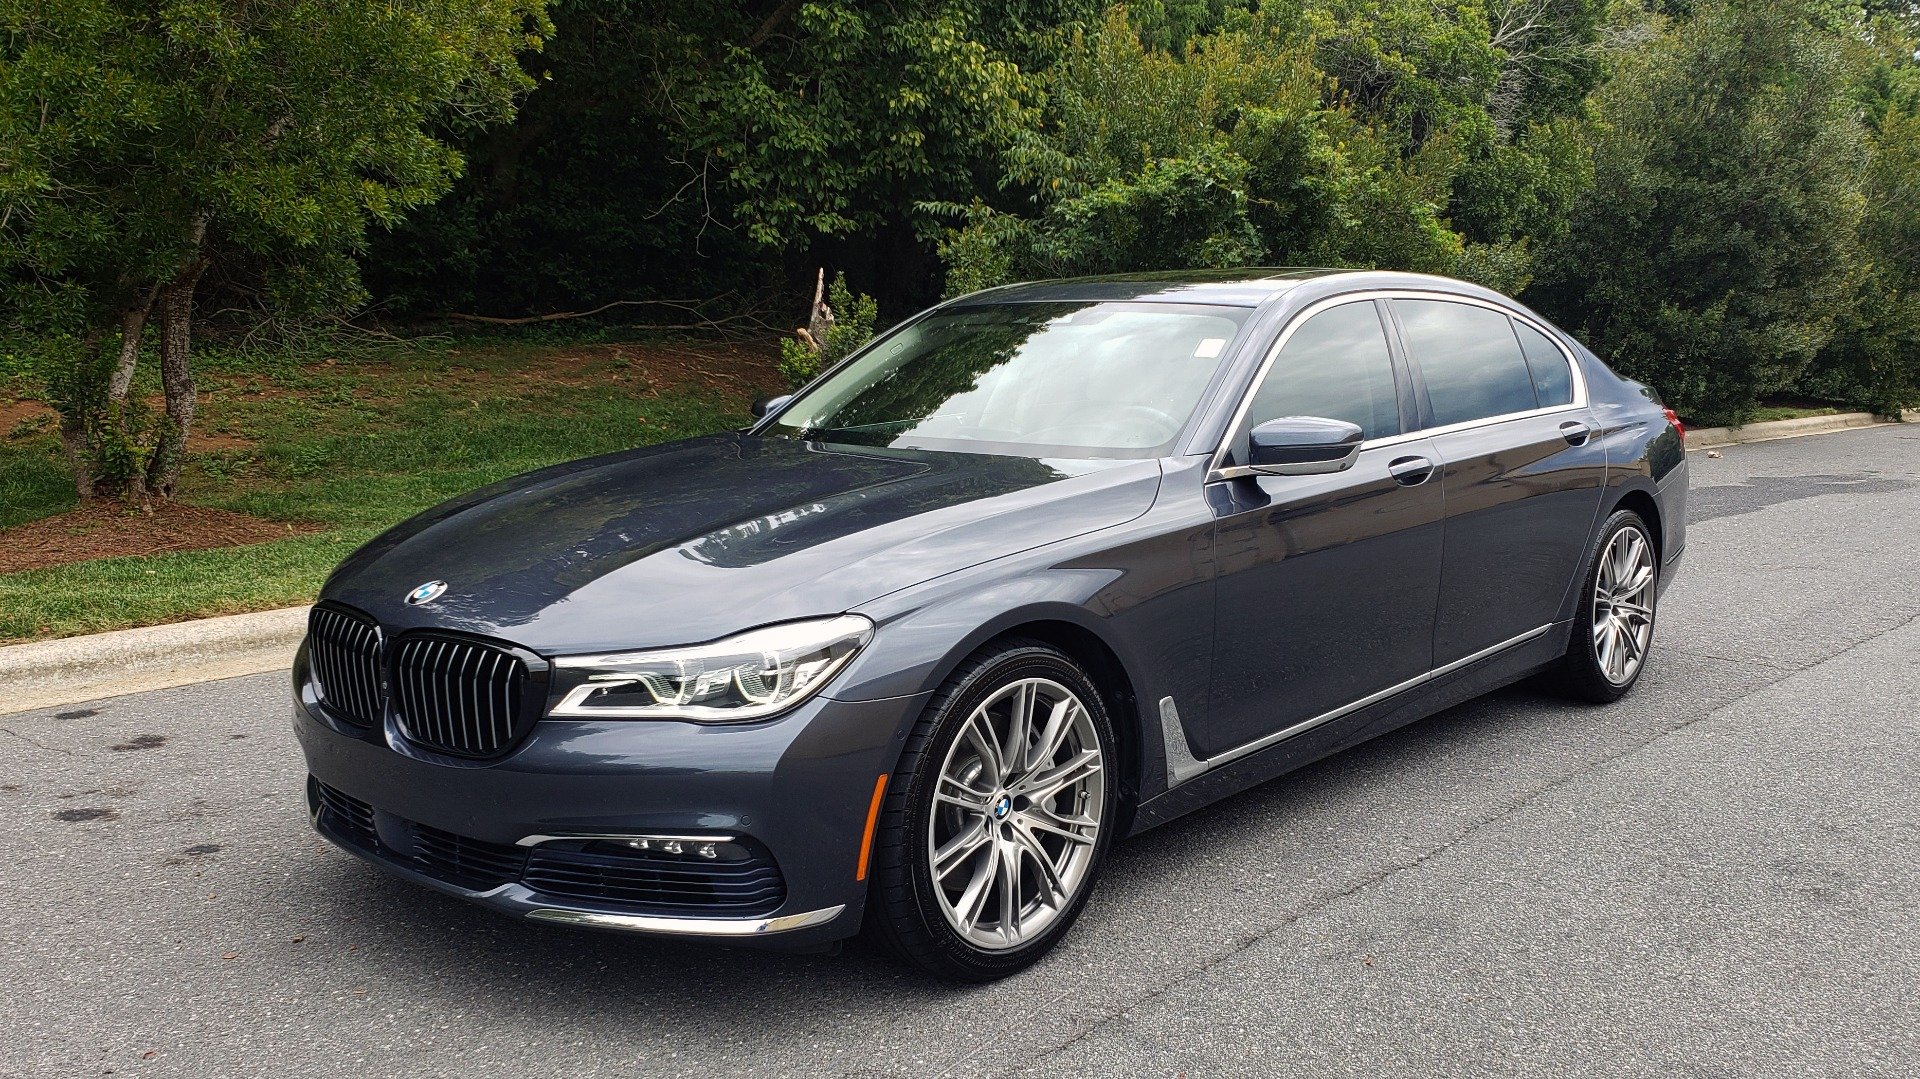 Used 2016 BMW 7 SERIES 750I EXEC PKG / DRVR ASST PLUS / CLD WTHR / SKY LOUNGE ROOF for sale Sold at Formula Imports in Charlotte NC 28227 1